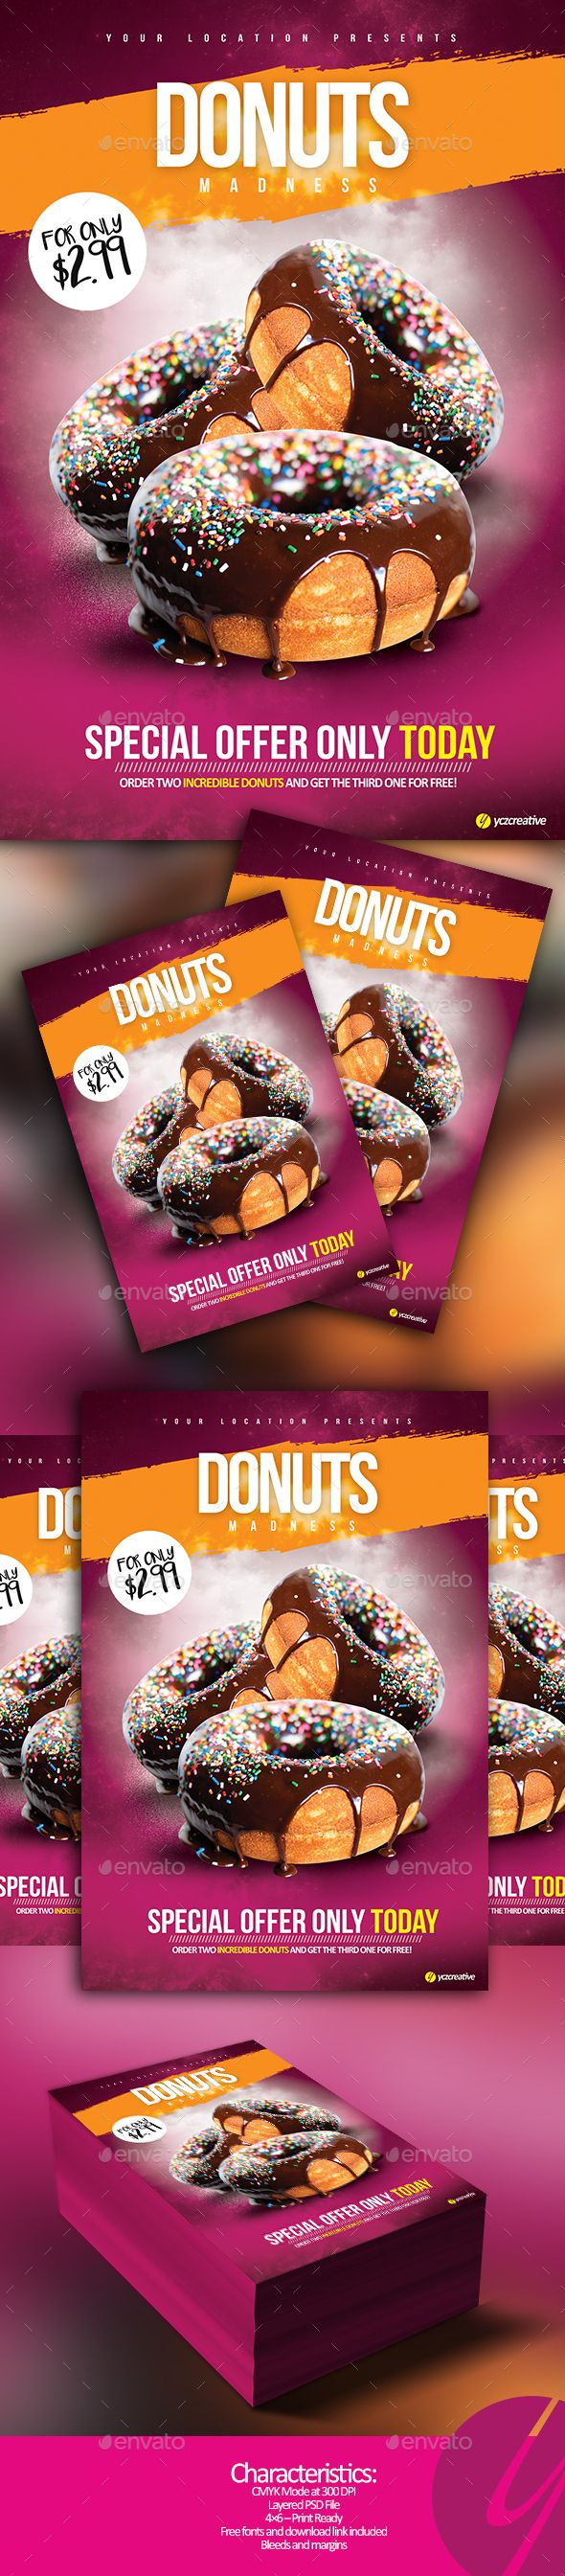 best images about food menu flyers pork donuts donuts madness flyer